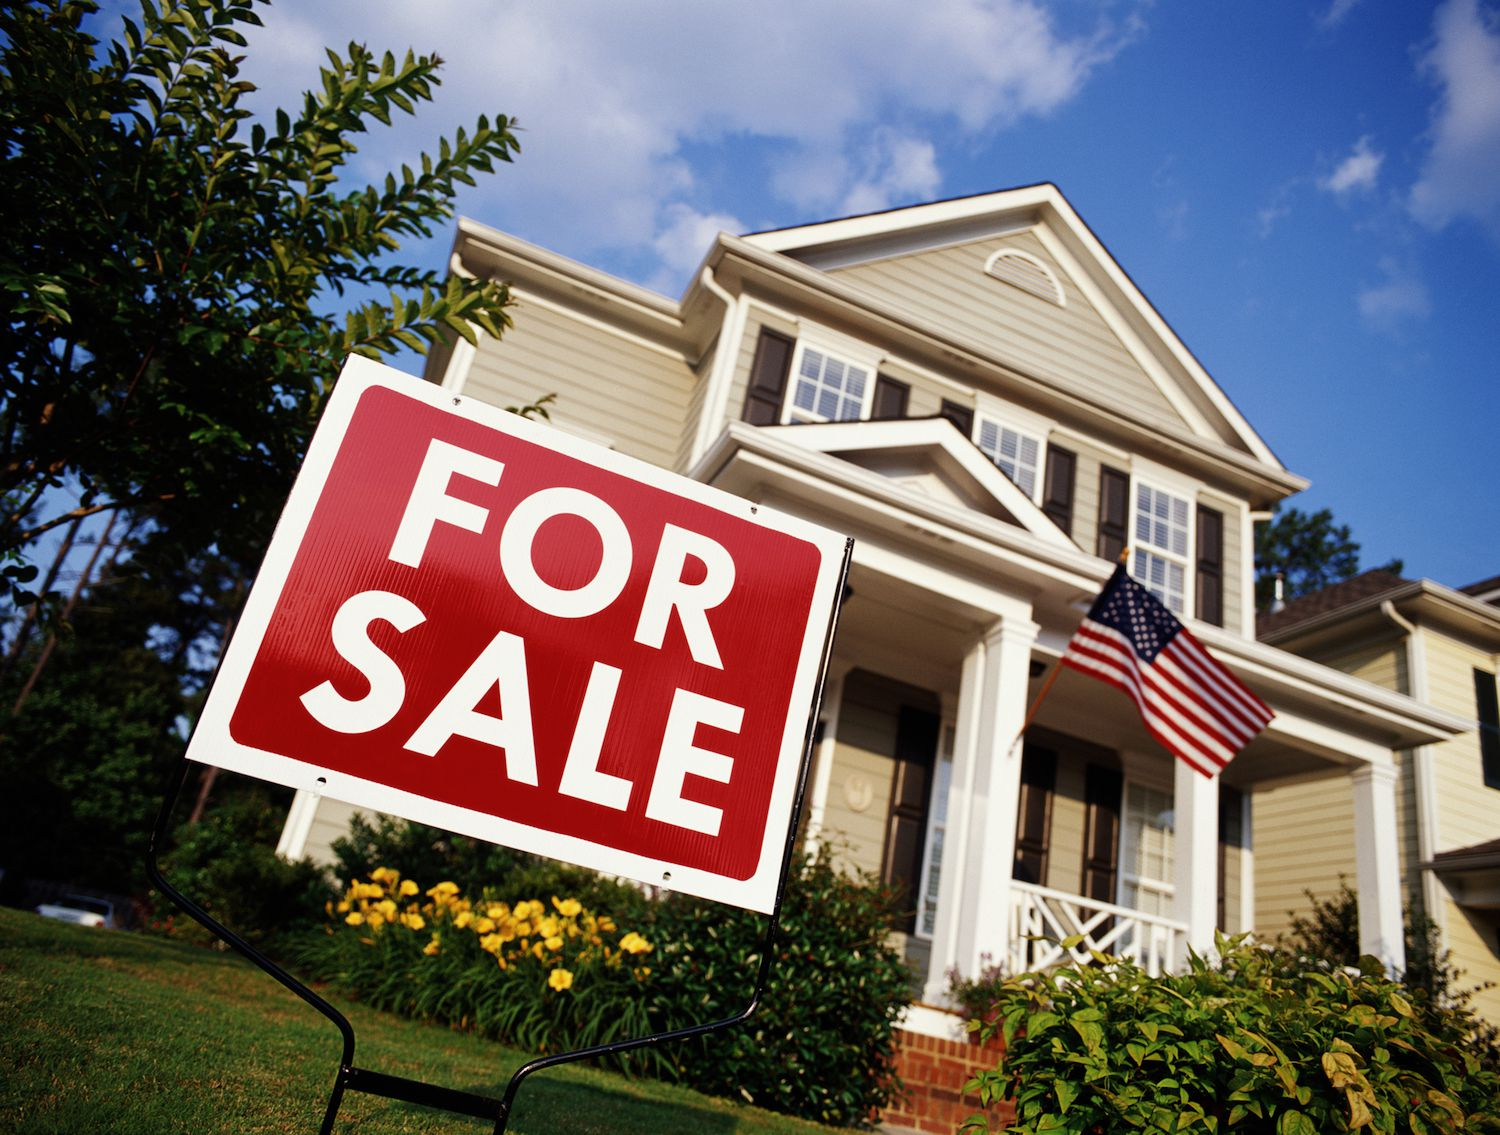 Some Tips On How To Price Your Home For Sale